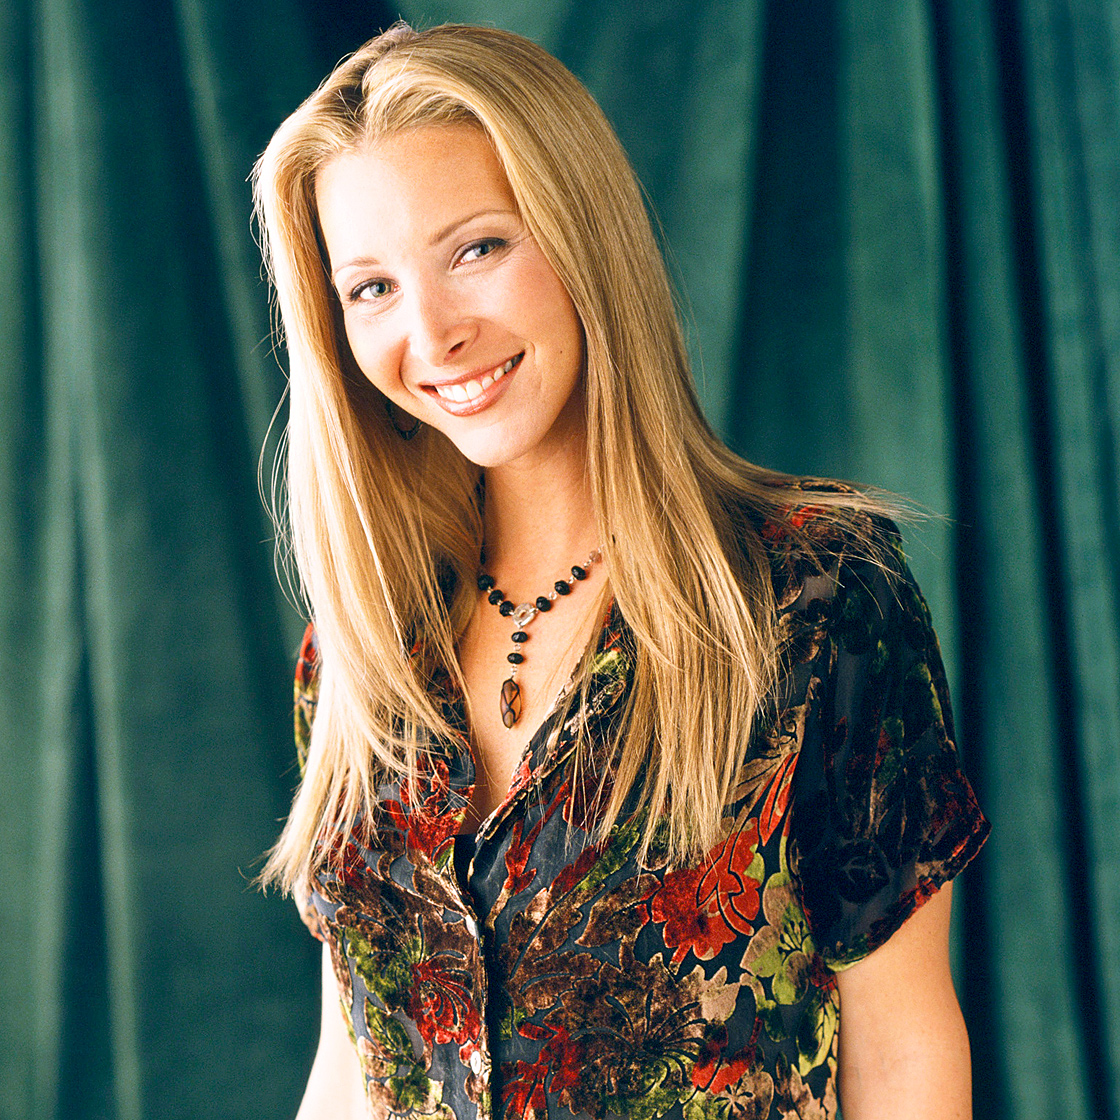 Kudrow was the first Friends cast member to earn an Emmy, taking home a trophy in 1998 for her role as kooky street musician Phoebe Buffay.